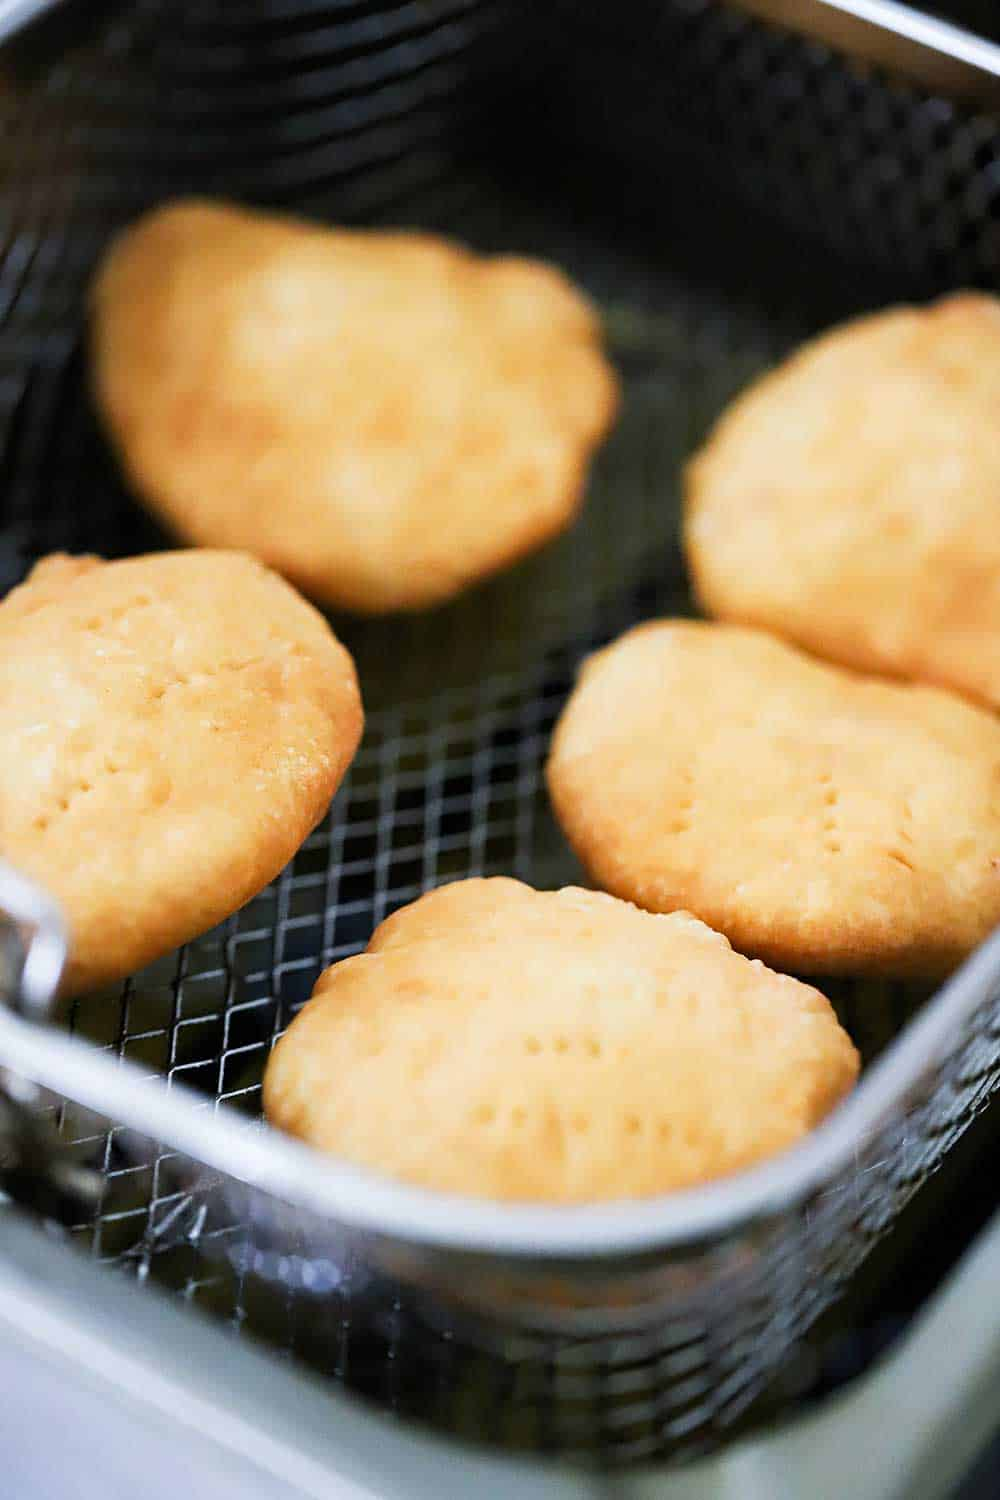 Golden brown Johnny cakes in a basket sitting over a deep fryer.